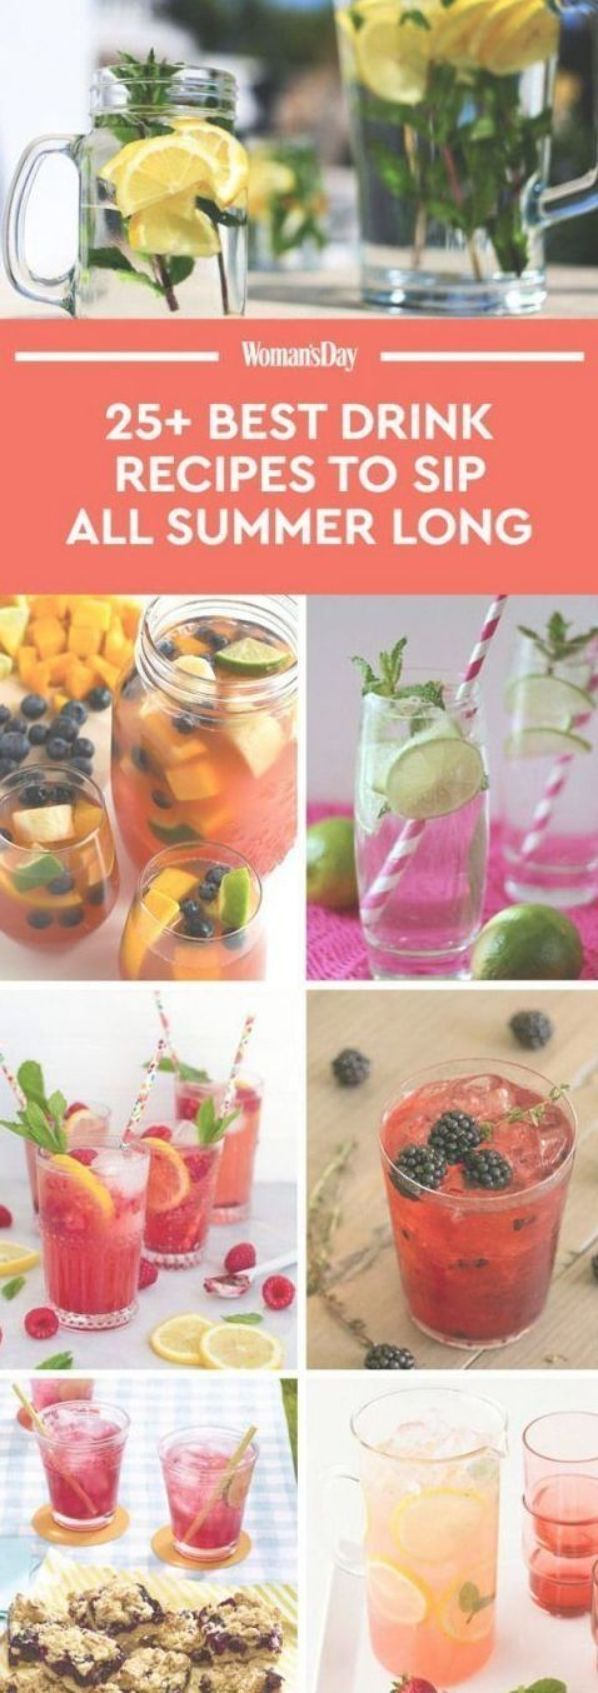 33 Best Summer Drink Recipes - Easy Non Alcoholic Summer Drinks #drinks #drinks ... - Drinks - #alcoholic #Drink #Drinks #Easy #Recipes #Summer #nonalcoholicsummerdrinks 33 Best Summer Drink Recipes - Easy Non Alcoholic Summer Drinks #drinks #drinks ... - Drinks - #alcoholic #Drink #Drinks #Easy #Recipes #Summer #nonalcoholicsummerdrinks